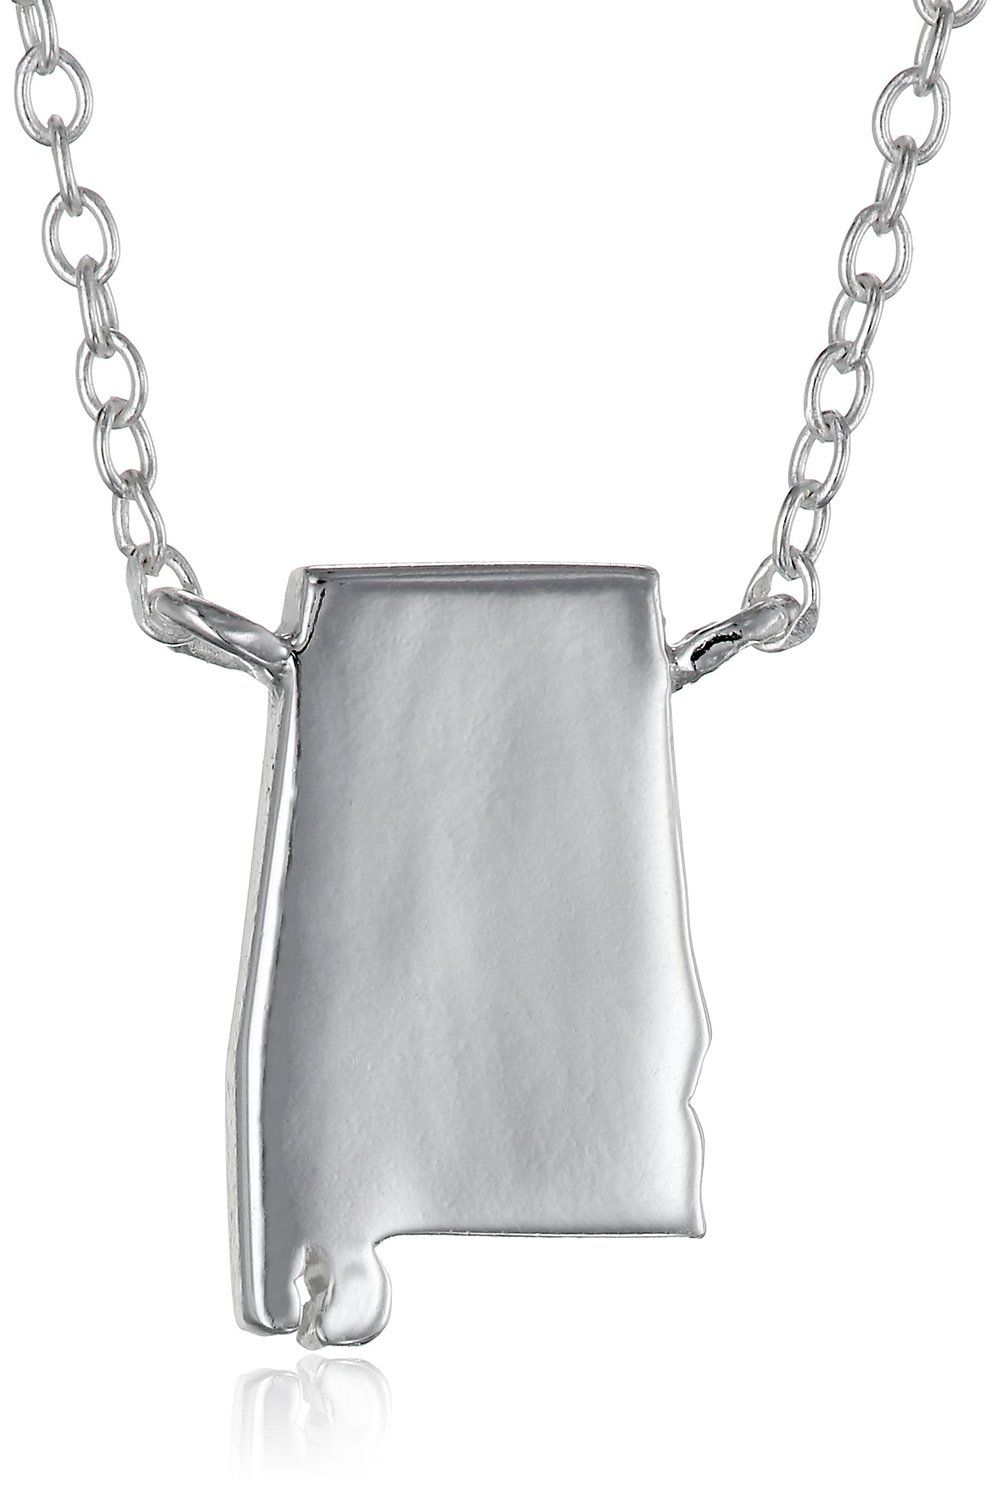 Sterling Silver Stationed Mini State Pendant Necklace, 16'+2' Extender *** ADDITIONAL DETAILS @ http://www.finejewelry4u.com/jewelry100/11320/?603